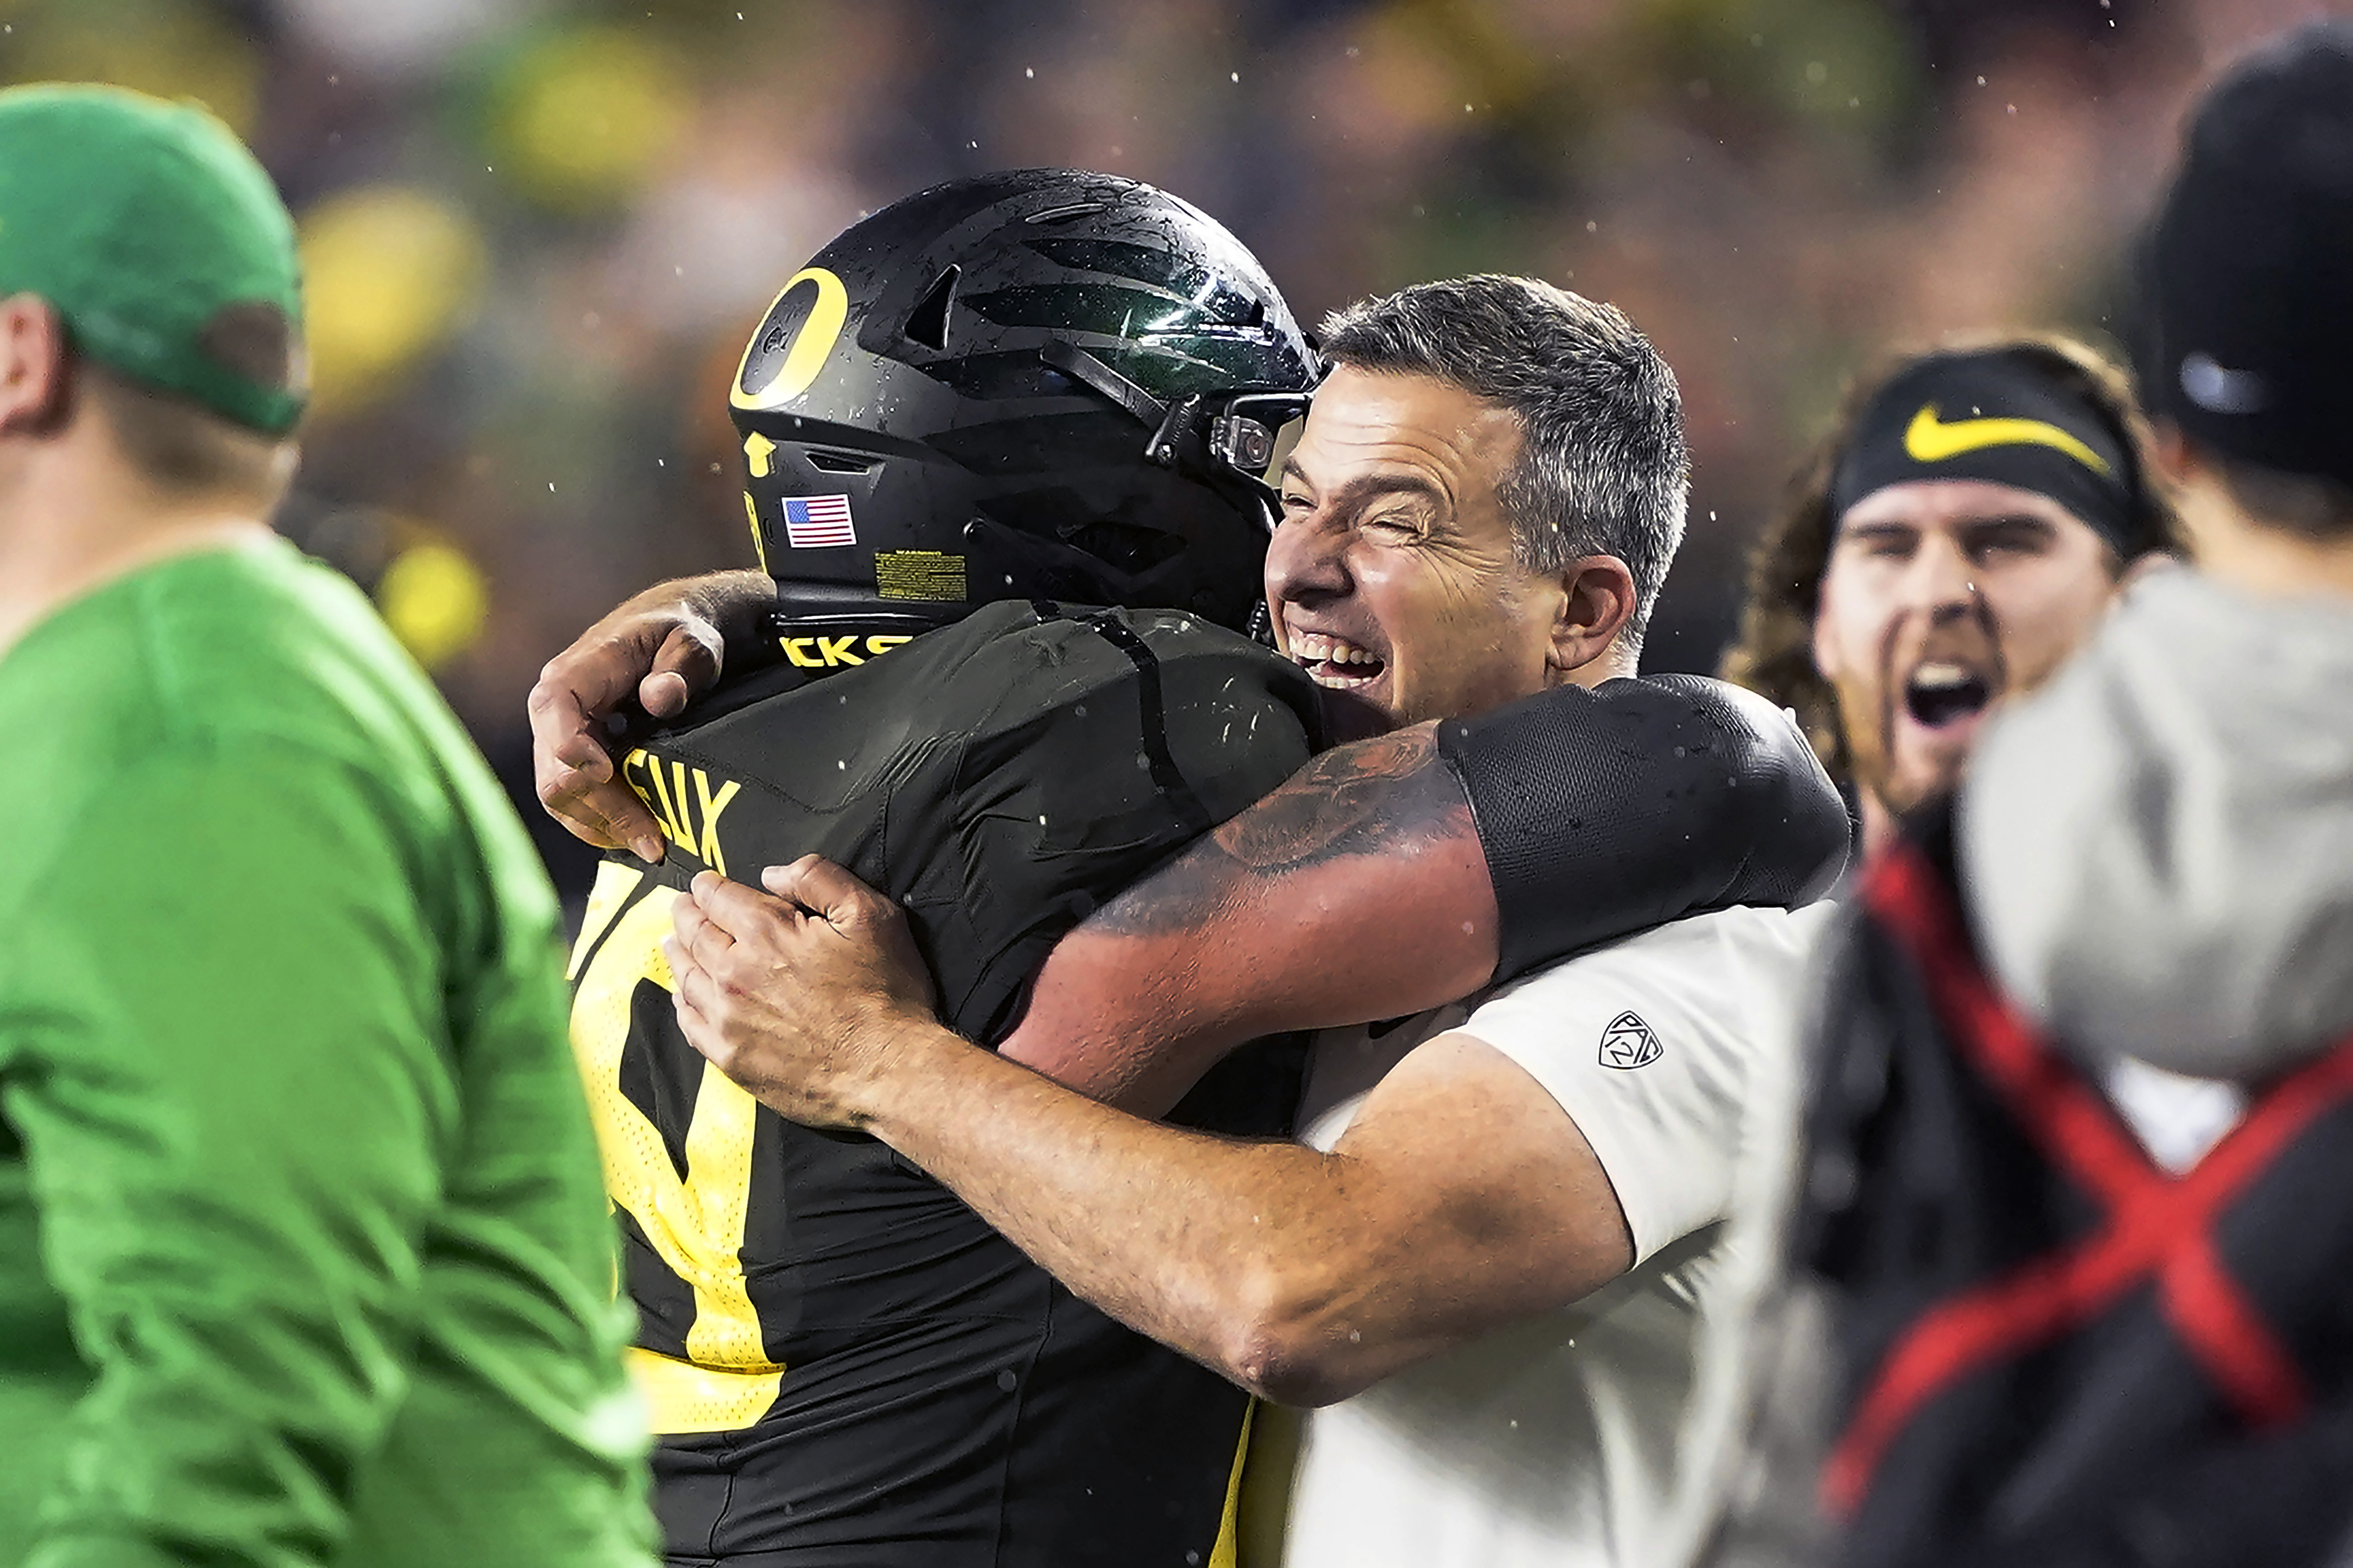 Oregon coach Mario Cristobal celebrates with offensive lineman Shane Lemieux after the Ducks defeated Utah in the Pac-12 Championship Game.